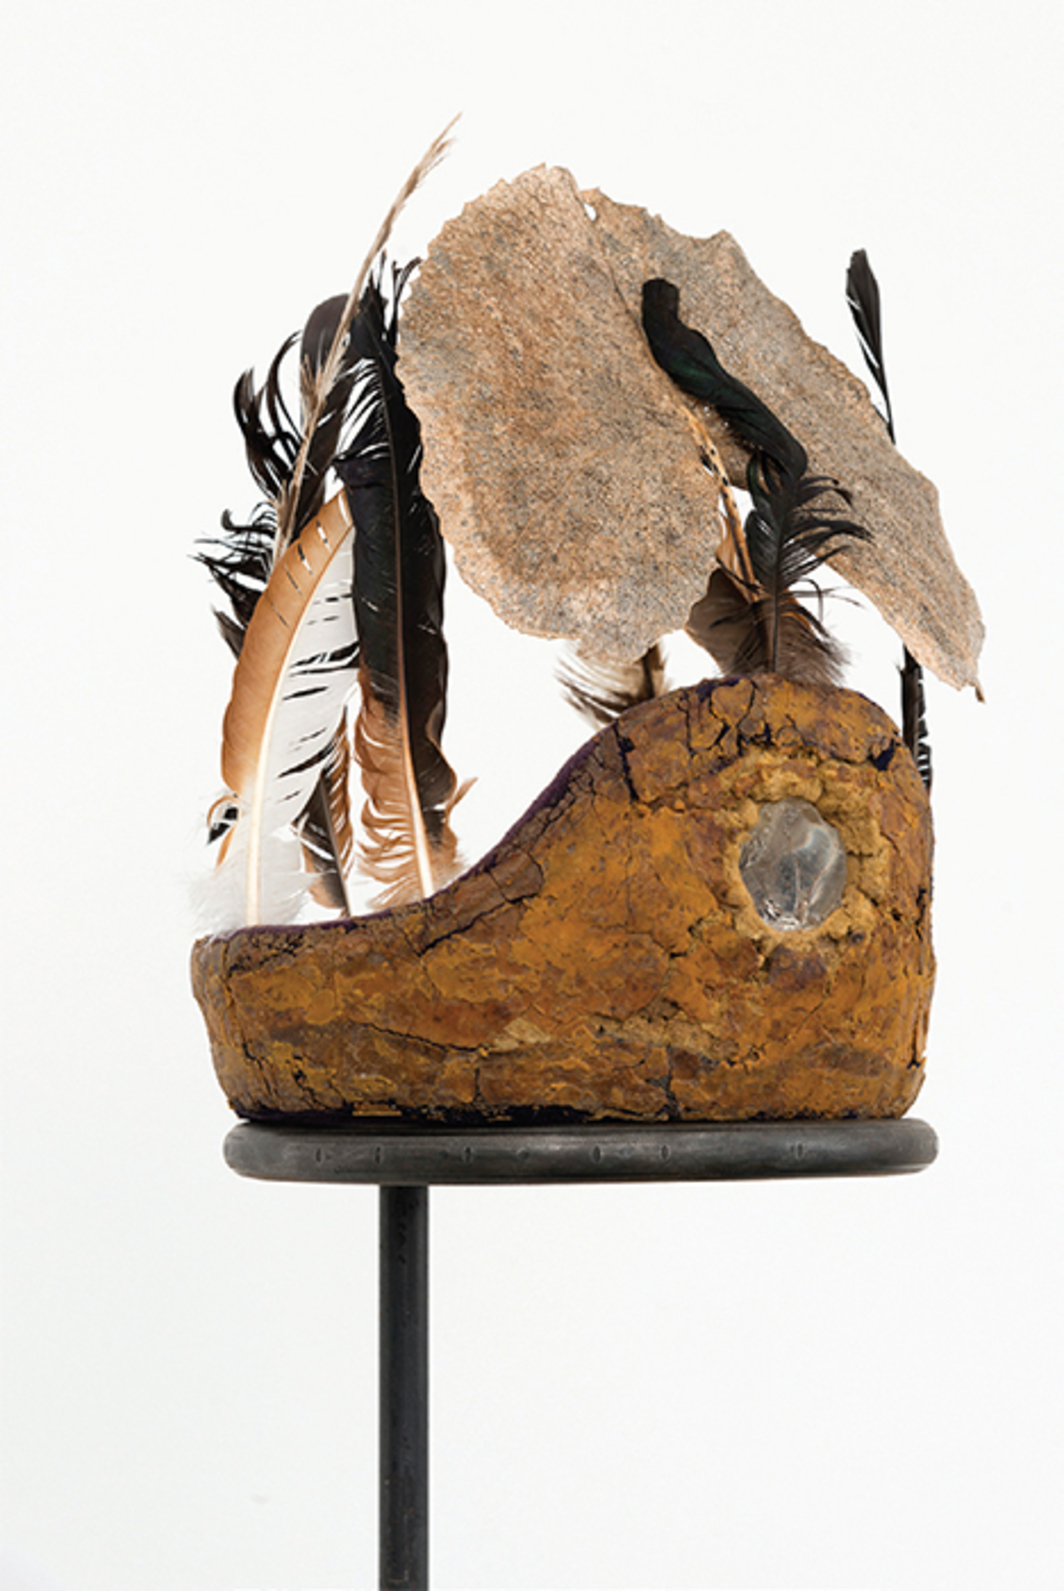 Harold Mendez, Margarita (detail), 2016, batting-helmet foam, broken glass, dried foliage, feathers, steel, 81 × 12 × 12""